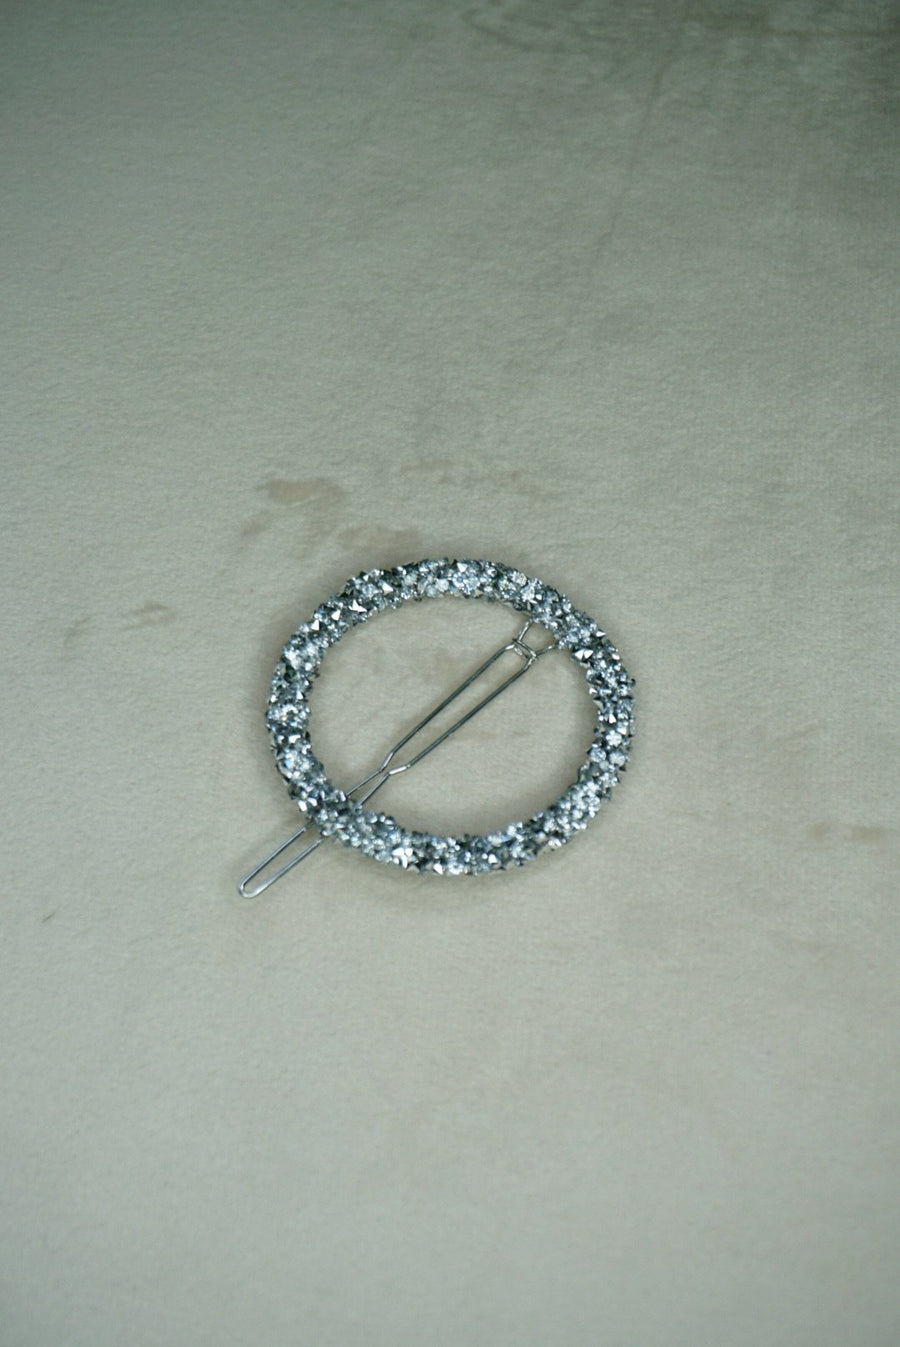 Silver Beaded Hair Clip - PhivestarhairboutiqueSilver Beaded Hair Clip